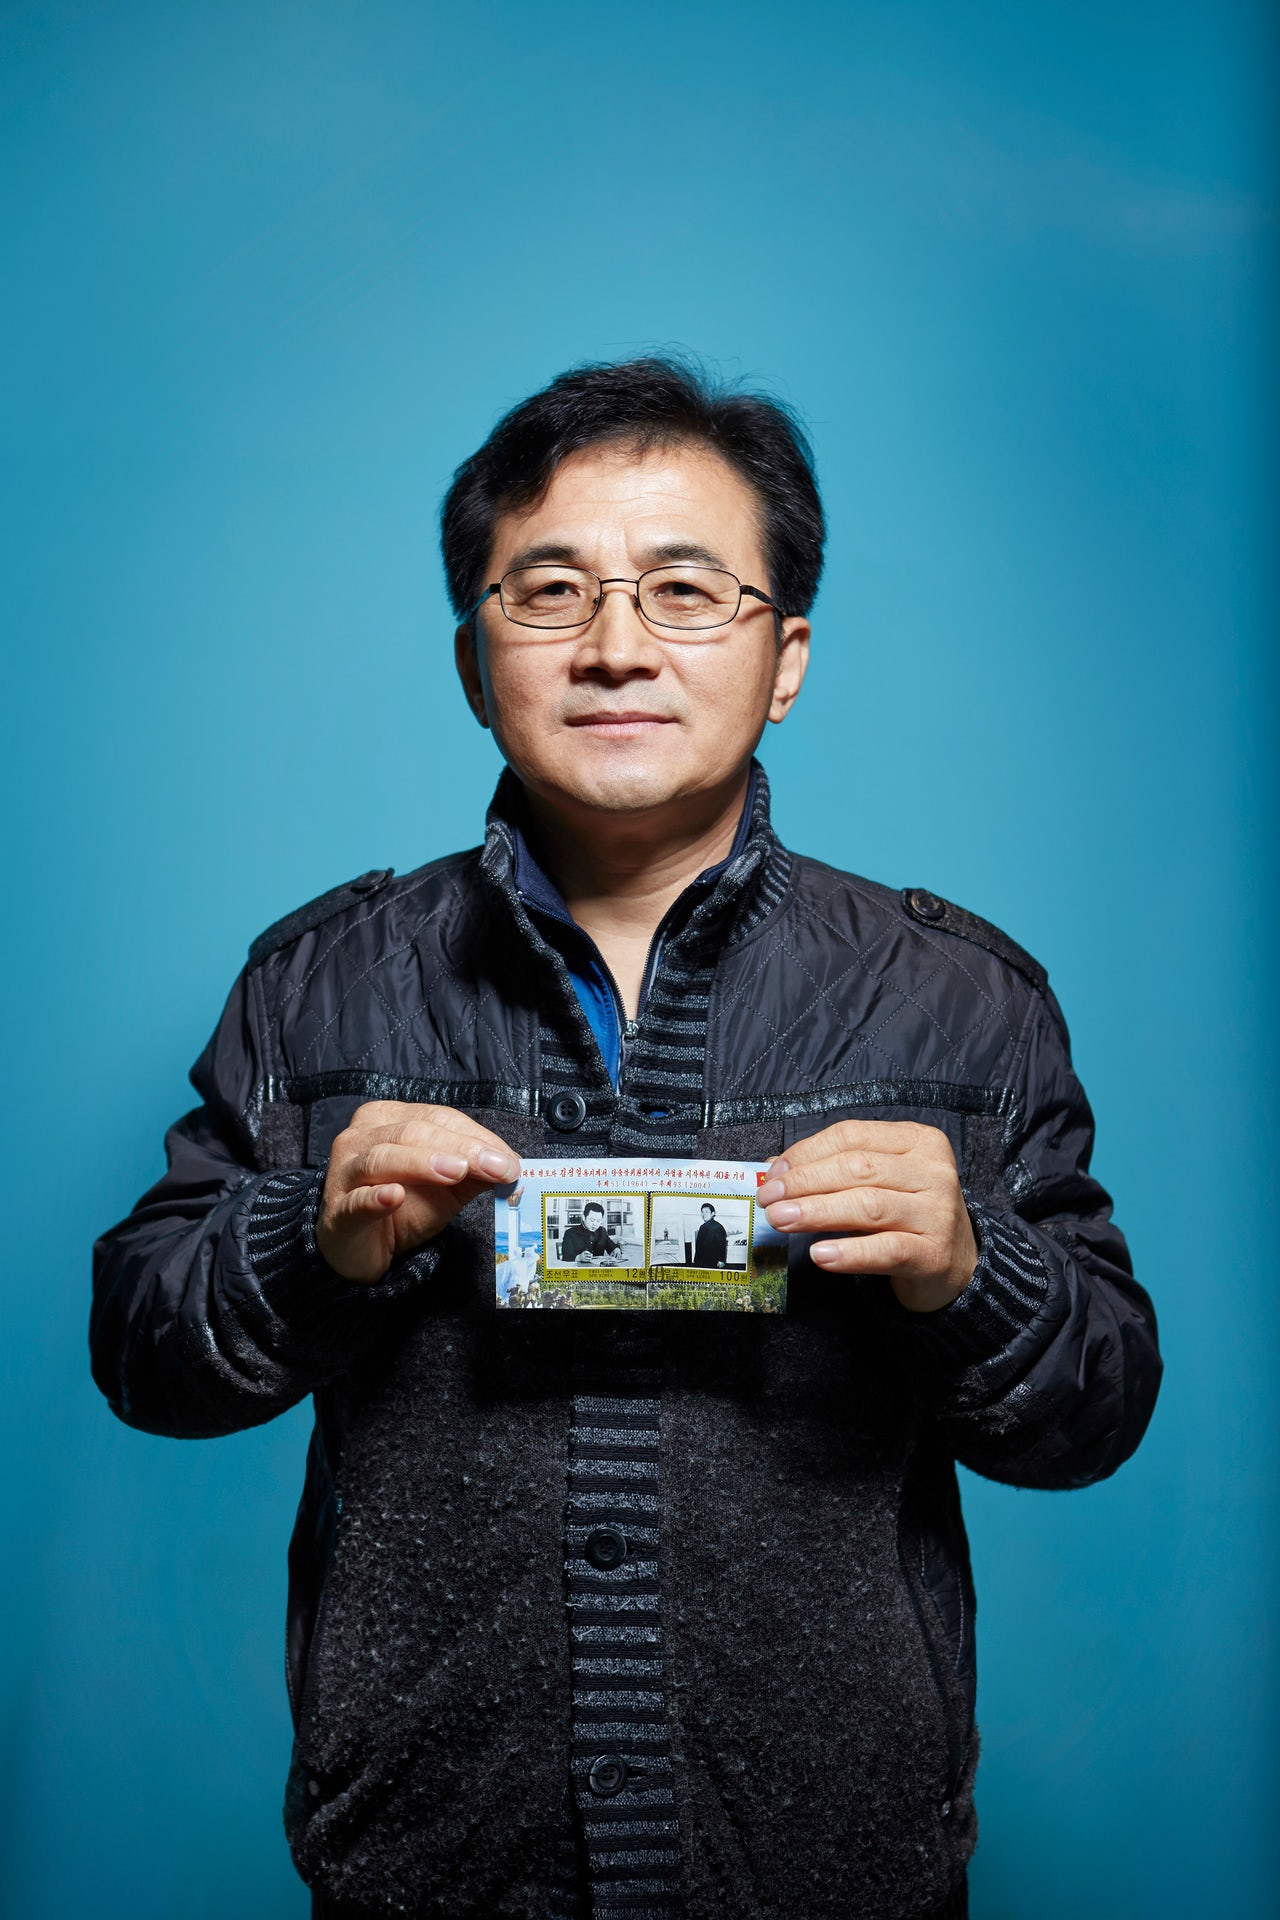 Kim Hyeongsoo, a North Korean defector who worked as a scientist in the country.